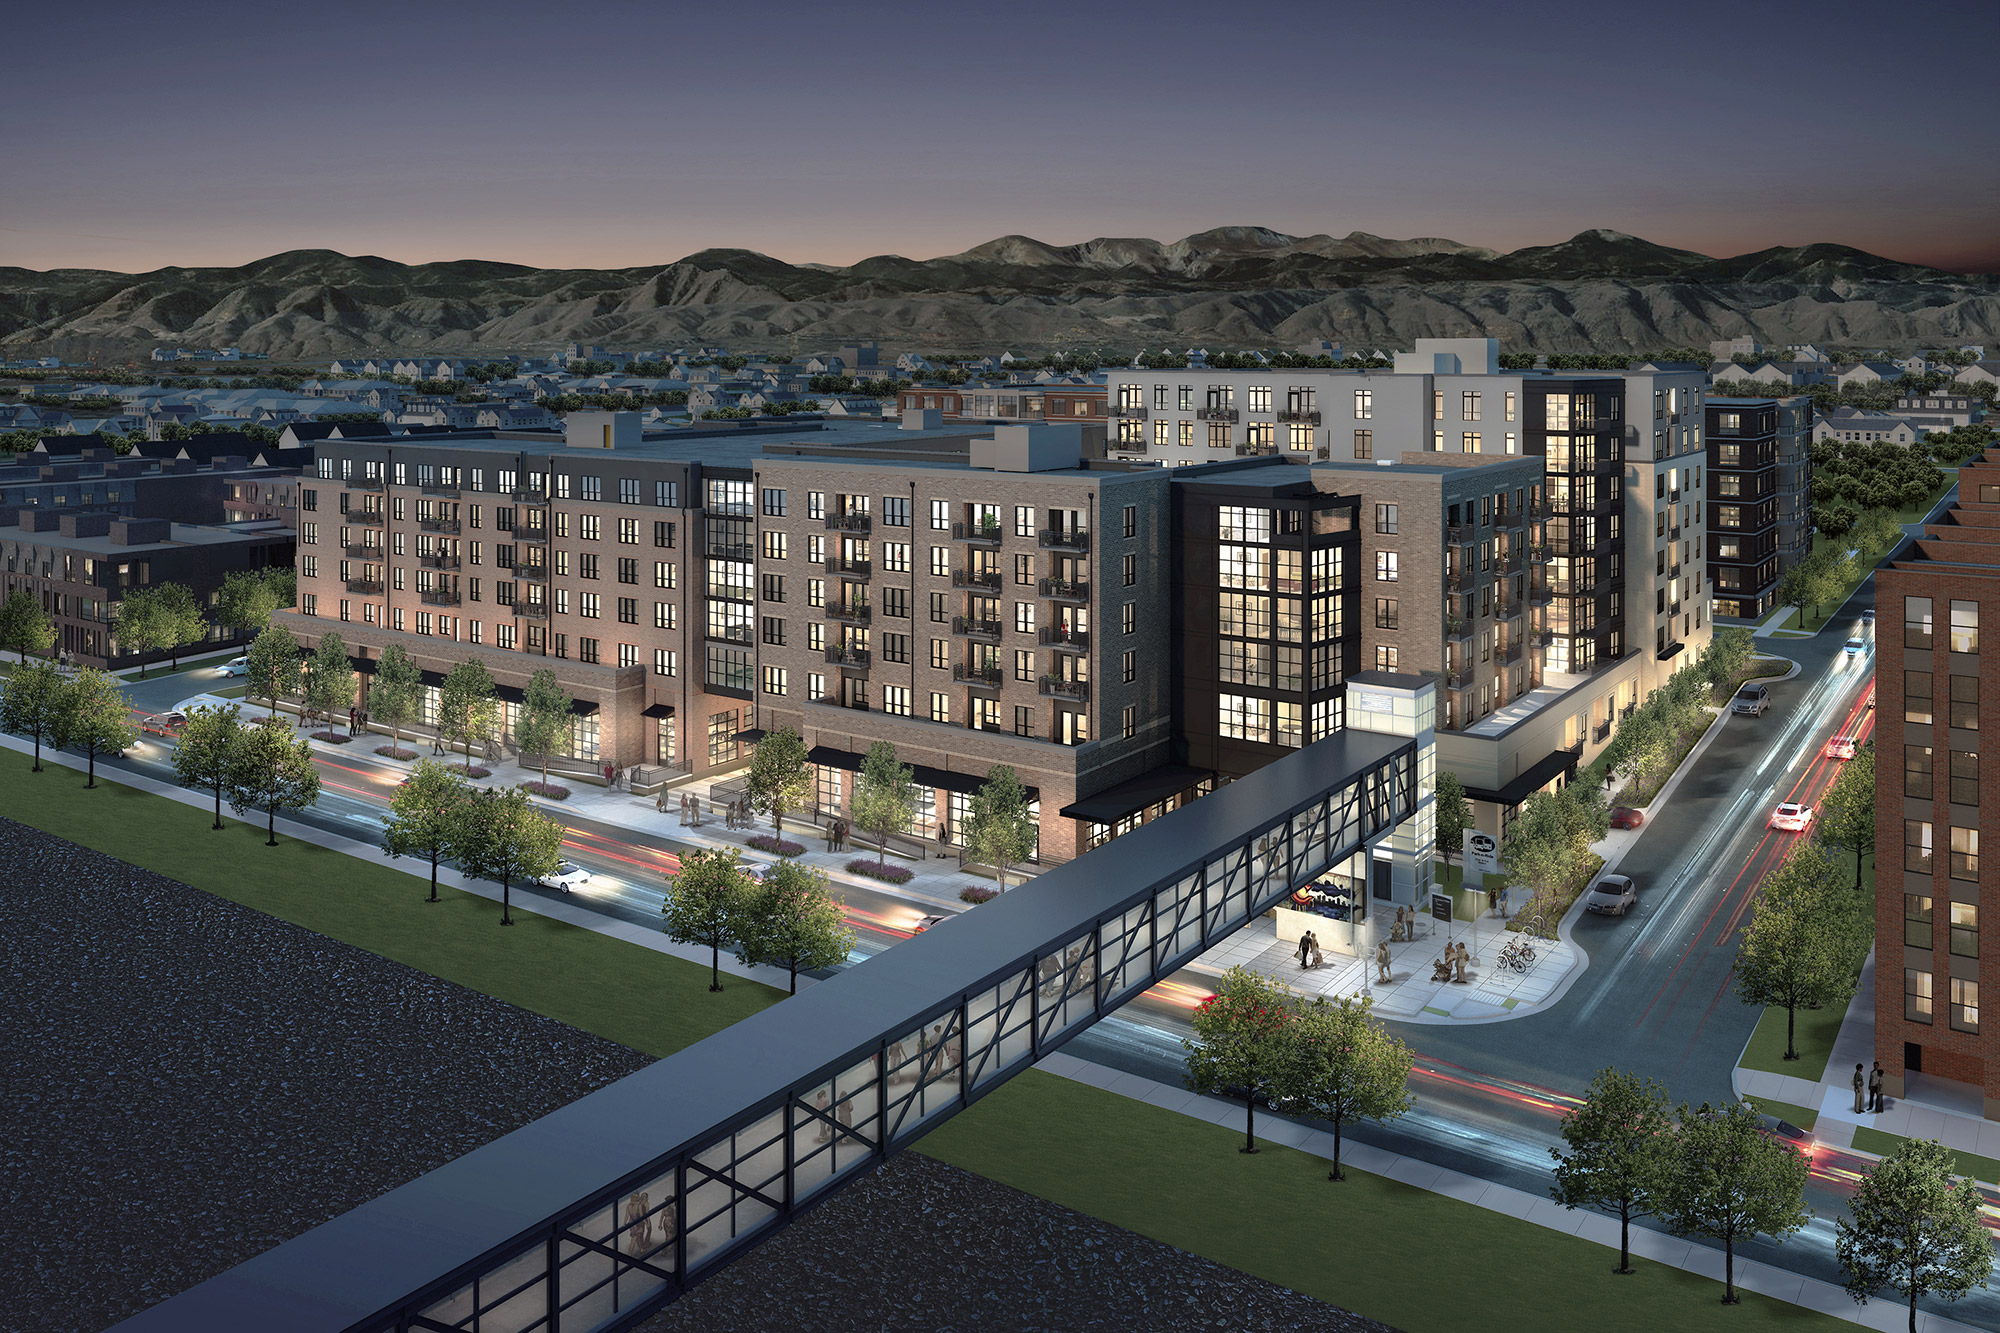 Zia rendering, courtesy of Confluence Companies and Craine Architecture